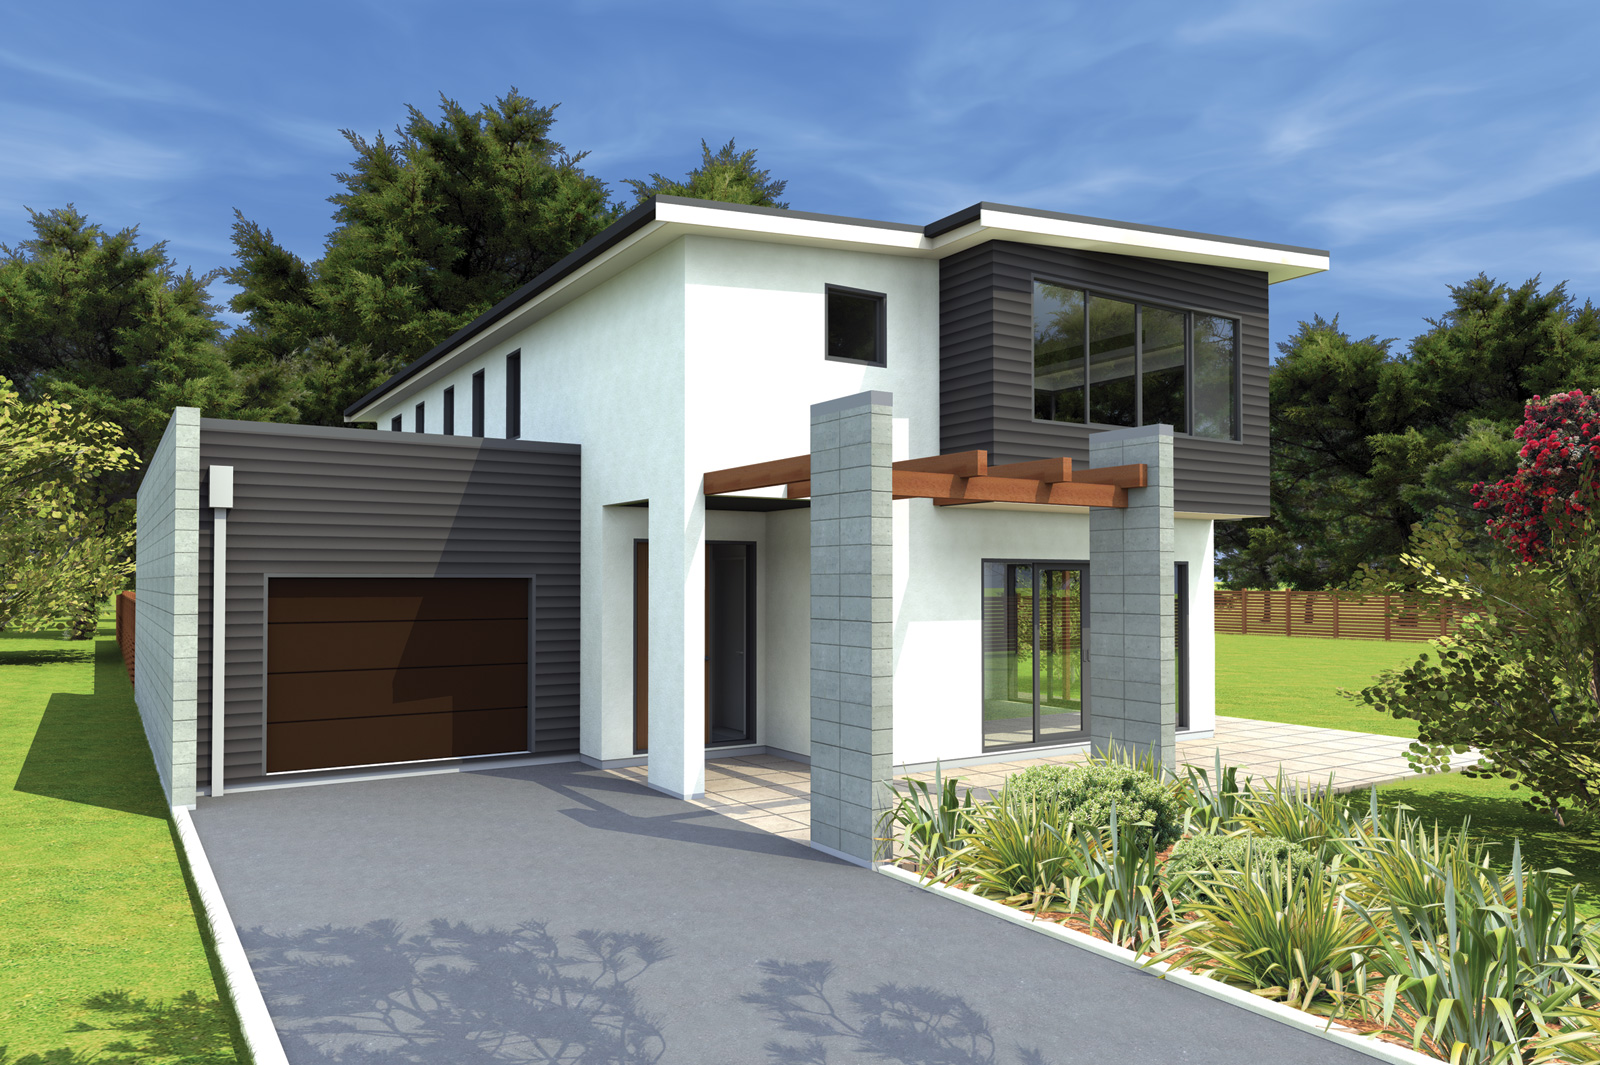 New home designs latest new modern homes designs new Latest home design